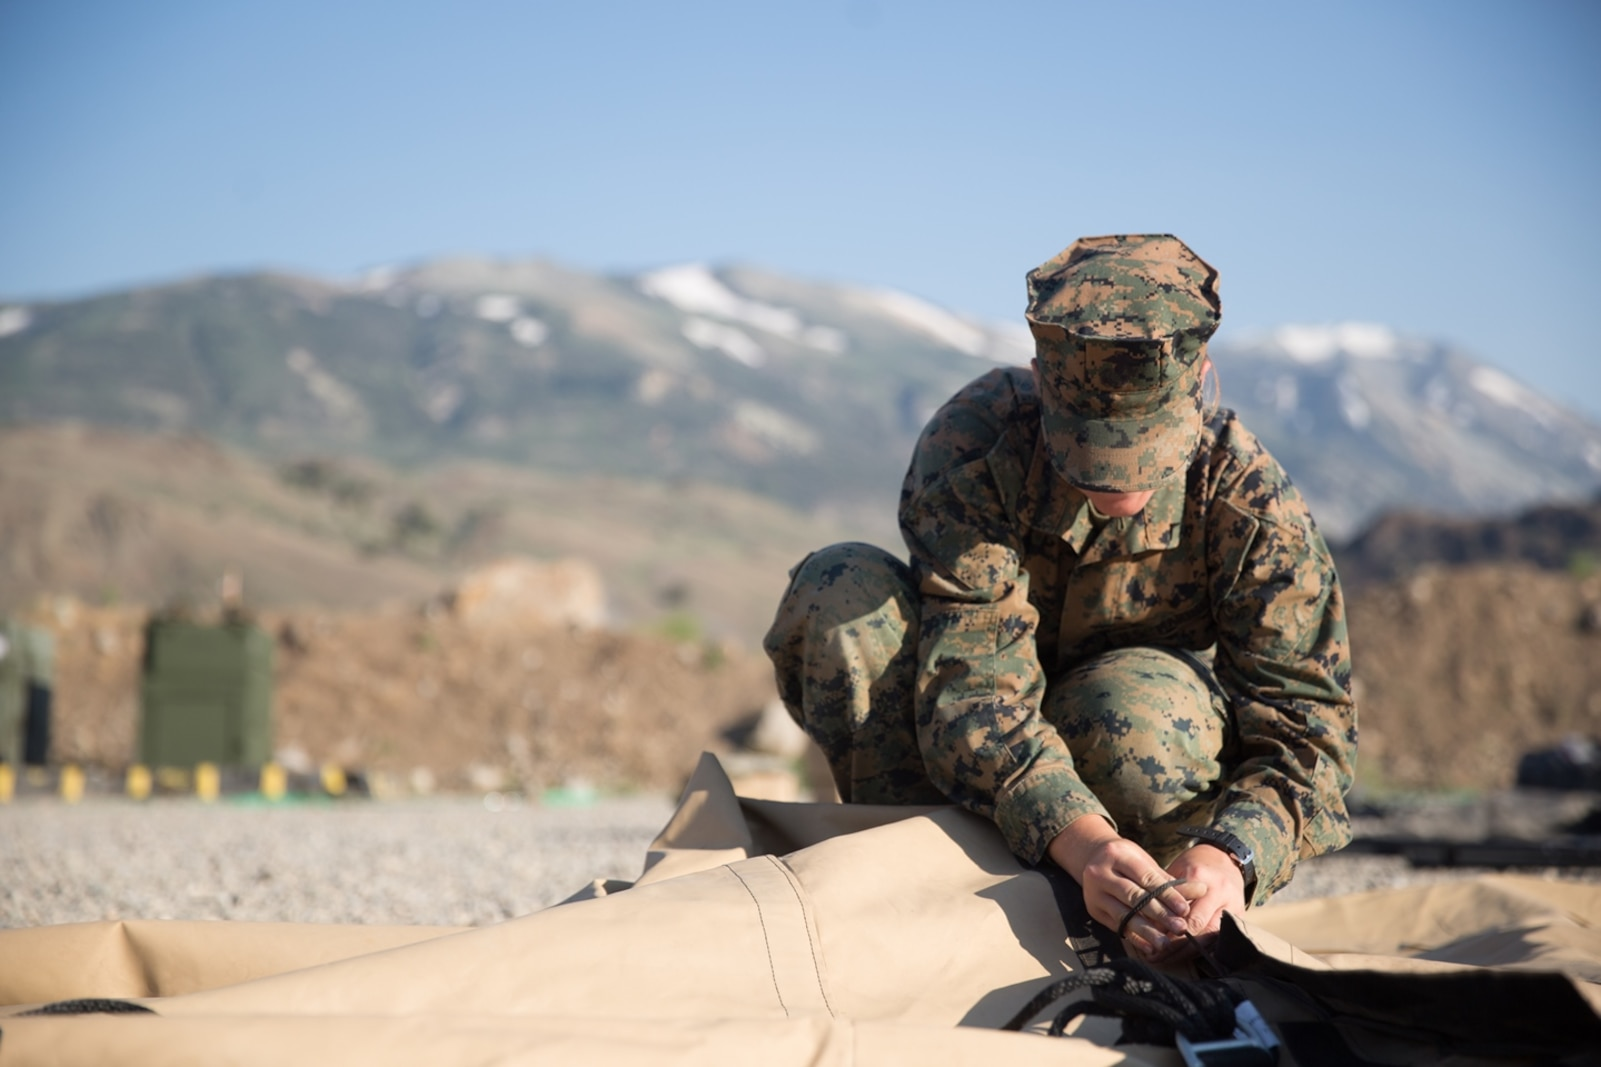 U.S. Marine Pfc.Olivia Rutherford, an ammunition technician with Combat Logistics Battalion 5 (CLB-5), Combat Logistics Regiment 1, 1st Marine Logistics Group, helps tie a knot on an expeditionary mess hall during a Mountain Exercise 4-17 on the Marine Corps Mountain Warfare Training Center Bridgeport, Calif., June 14, 2017. CLB-5 supports the 2d Battalion, 8th Marine Regiment, 2d Marine Division, logistically by tackling the technical aspects of mountainous and cold weather operations by providing them chow, water, and fuel. (U.S. Marine Corps photo by Lance Cpl. Timothy Shoemaker)